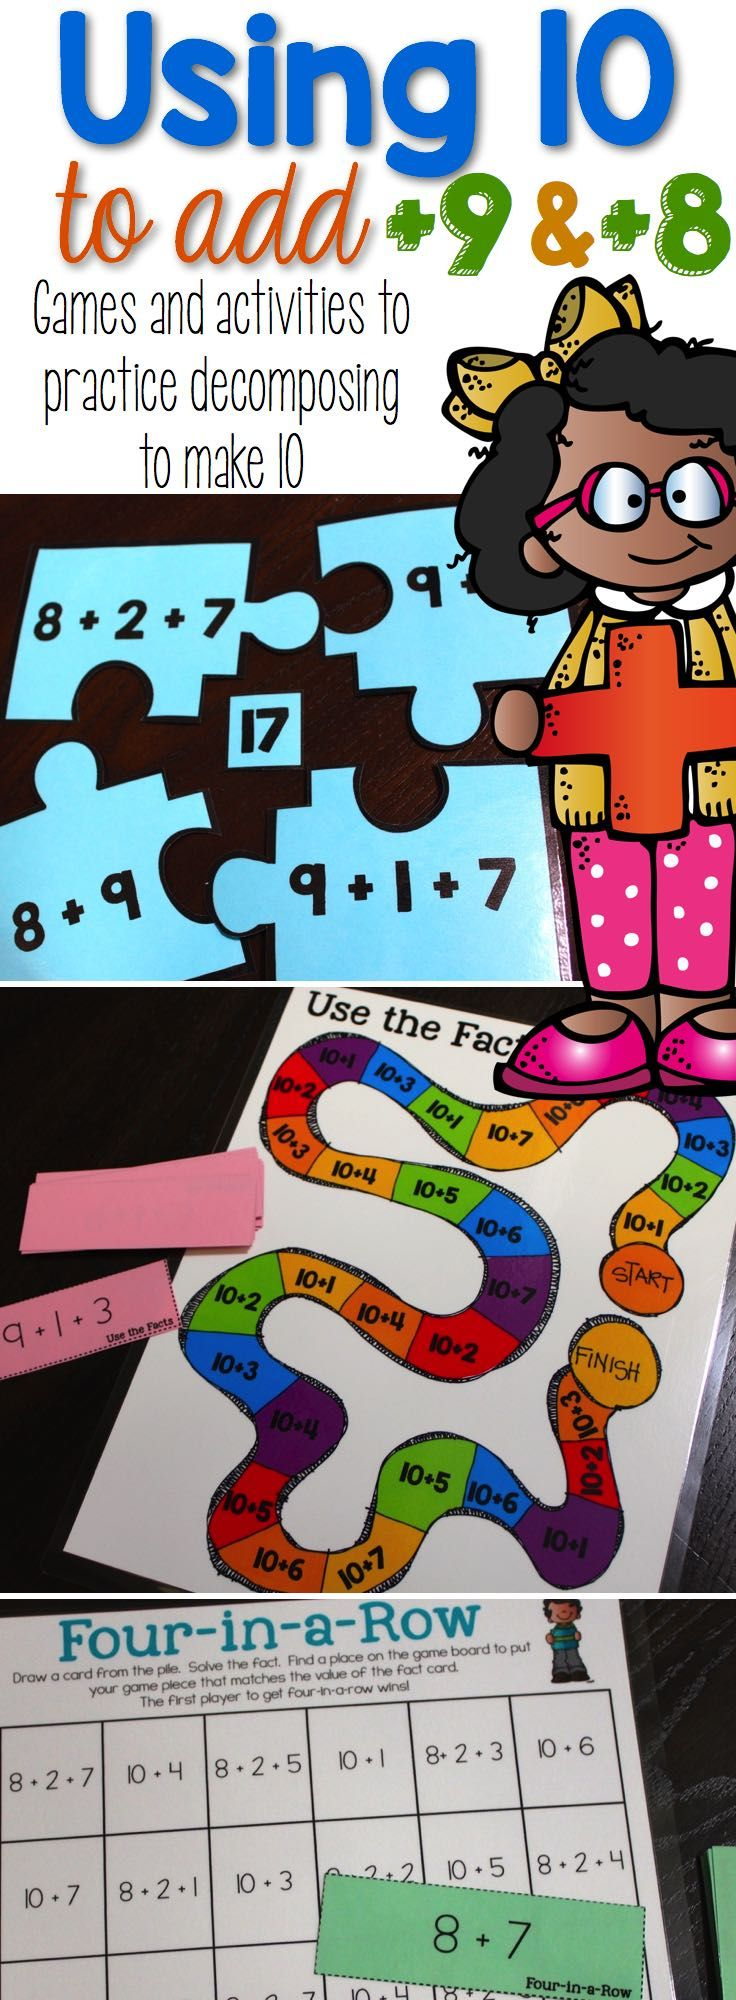 Using 10 to Add is full of games and activities to engage your students in using ten to add +9 and +8 facts. Activities Include: Equal Equations (three different ways to play), Use the Facts Board Game, Four-in-a-Row, Number Puzzles, and Addition Chart Fill-in. #firstgrademath